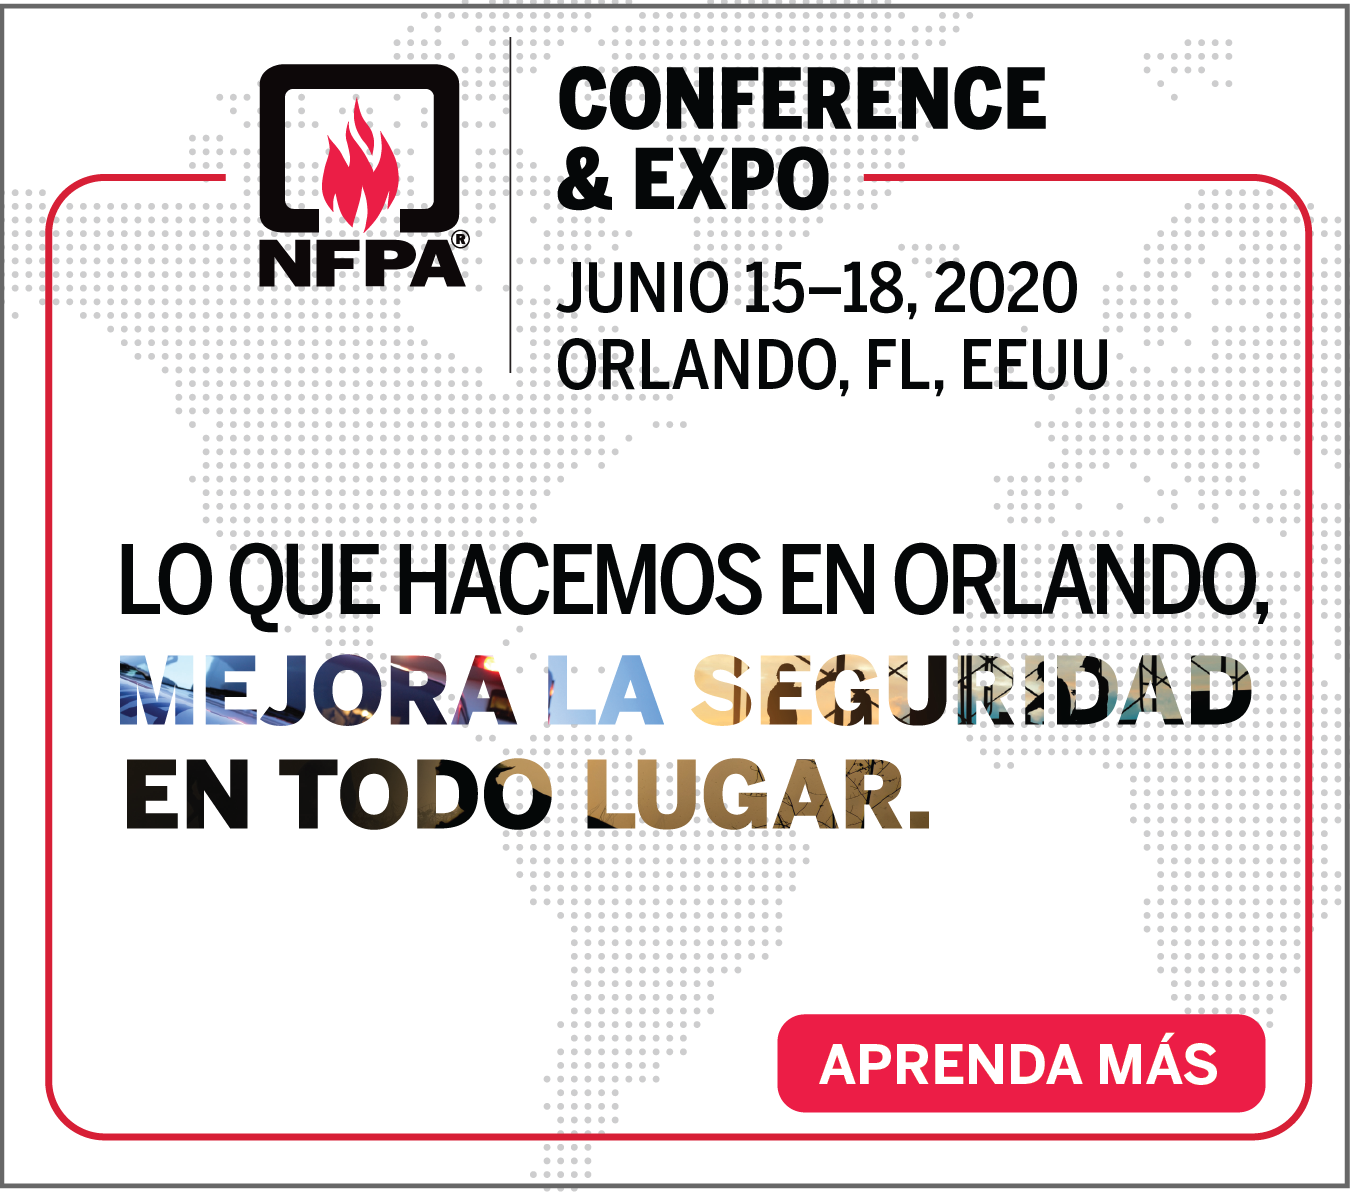 NFPA Conference & Expo 2020